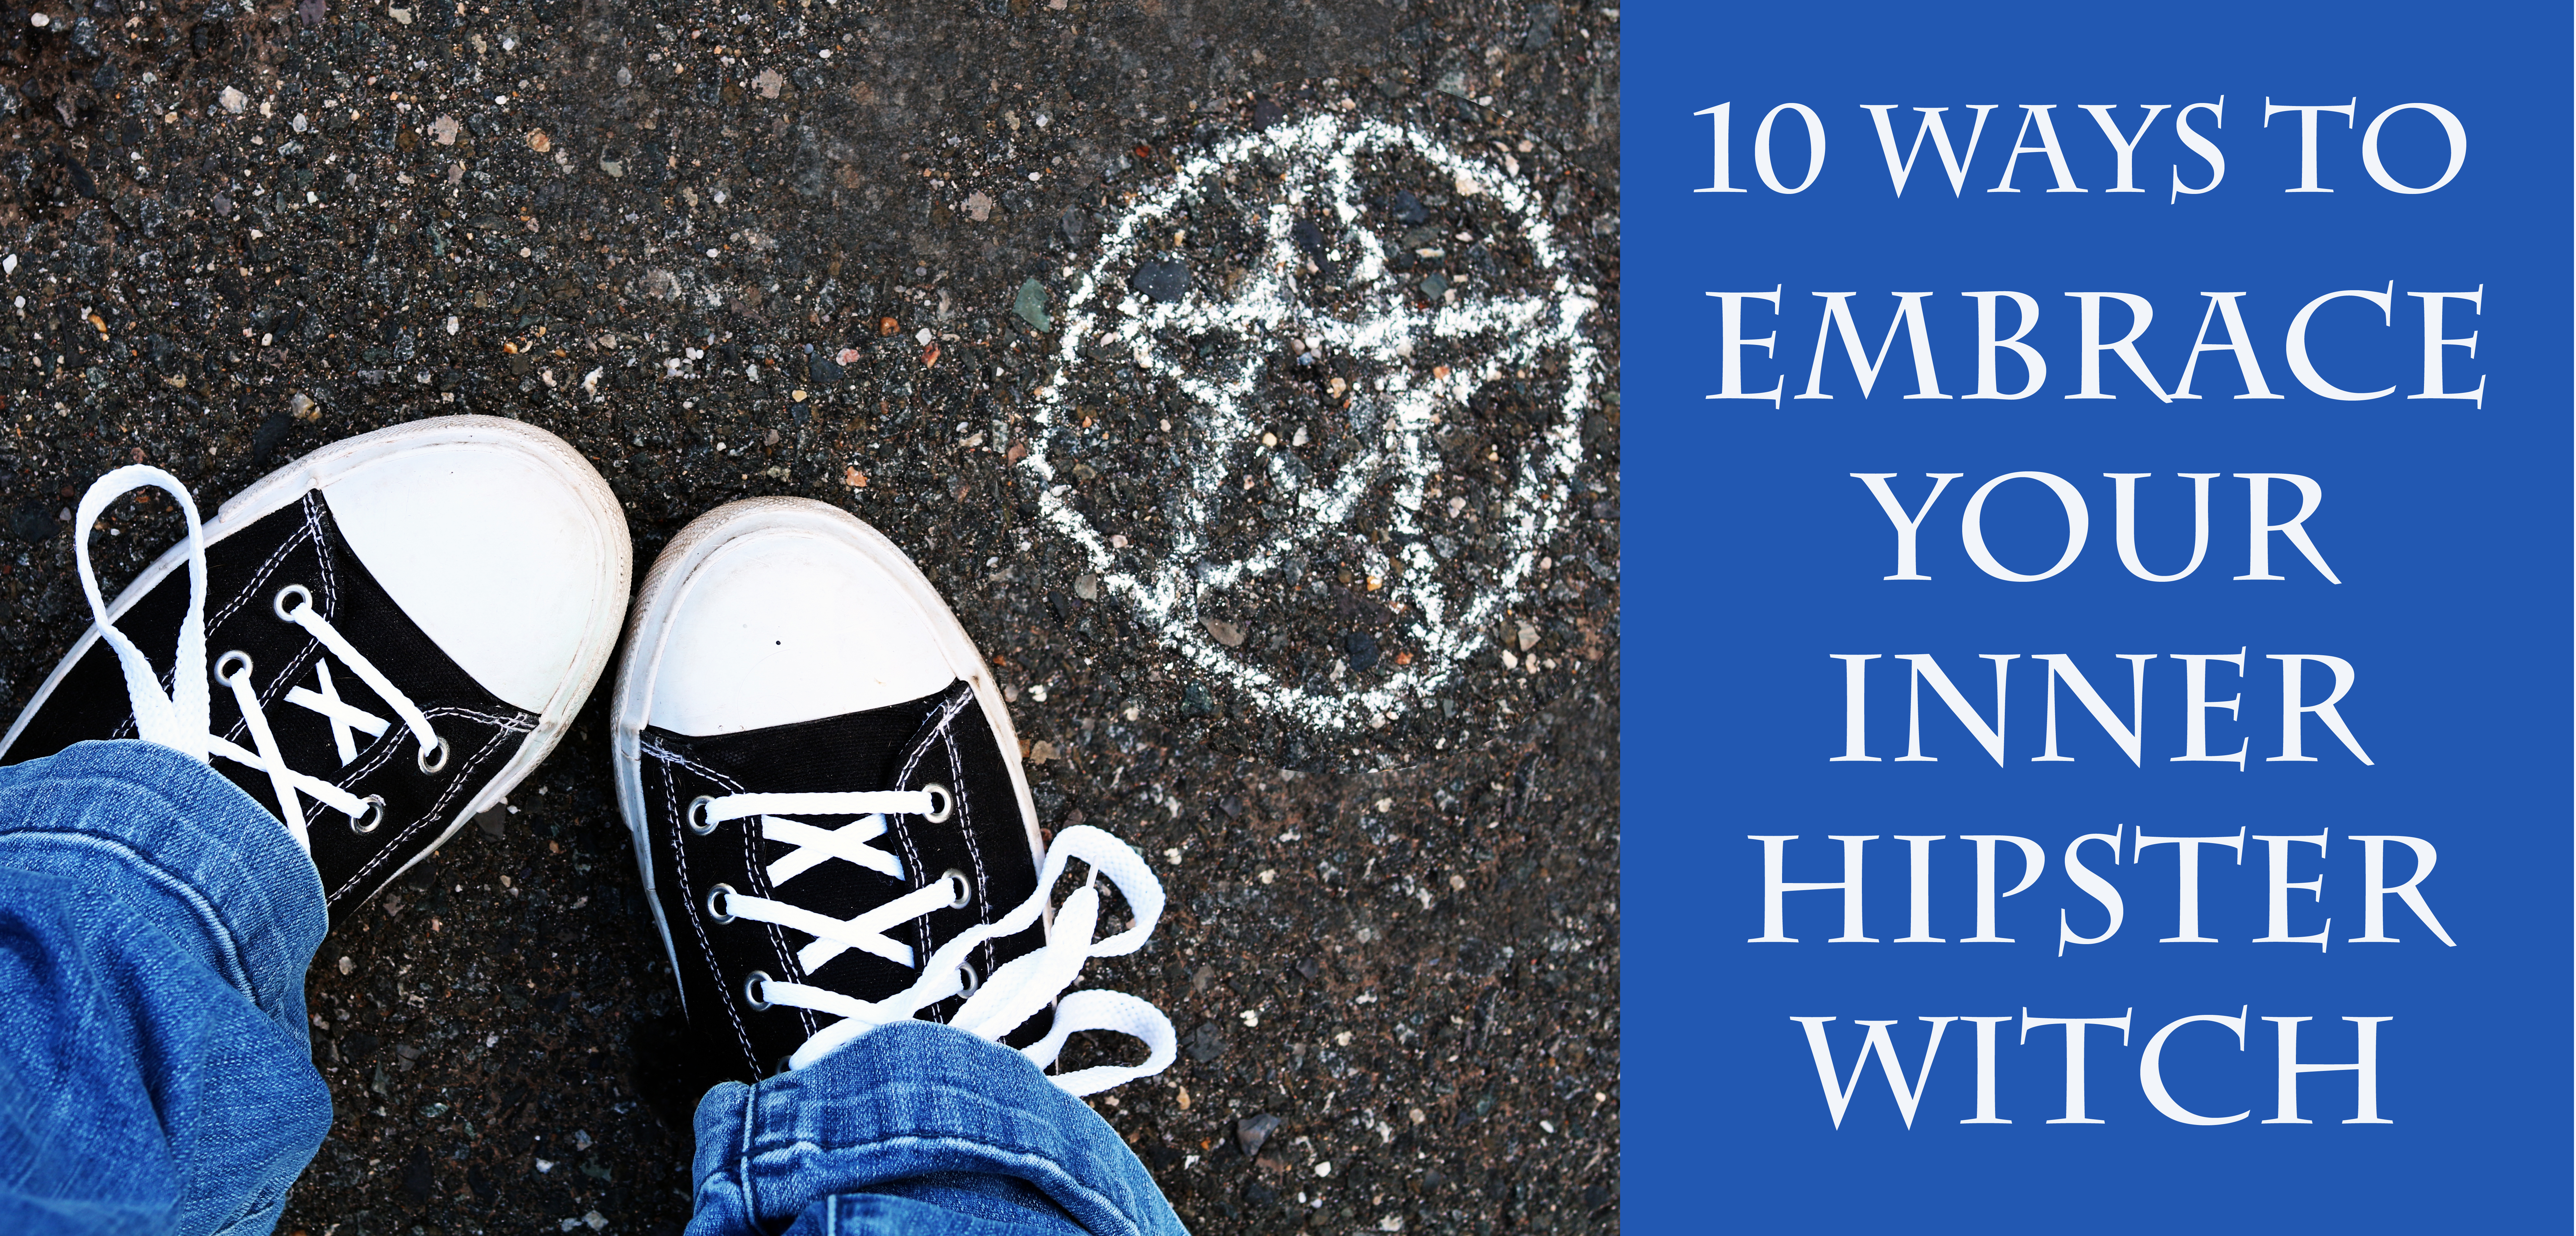 10 ways to embrace your inner hipster witch